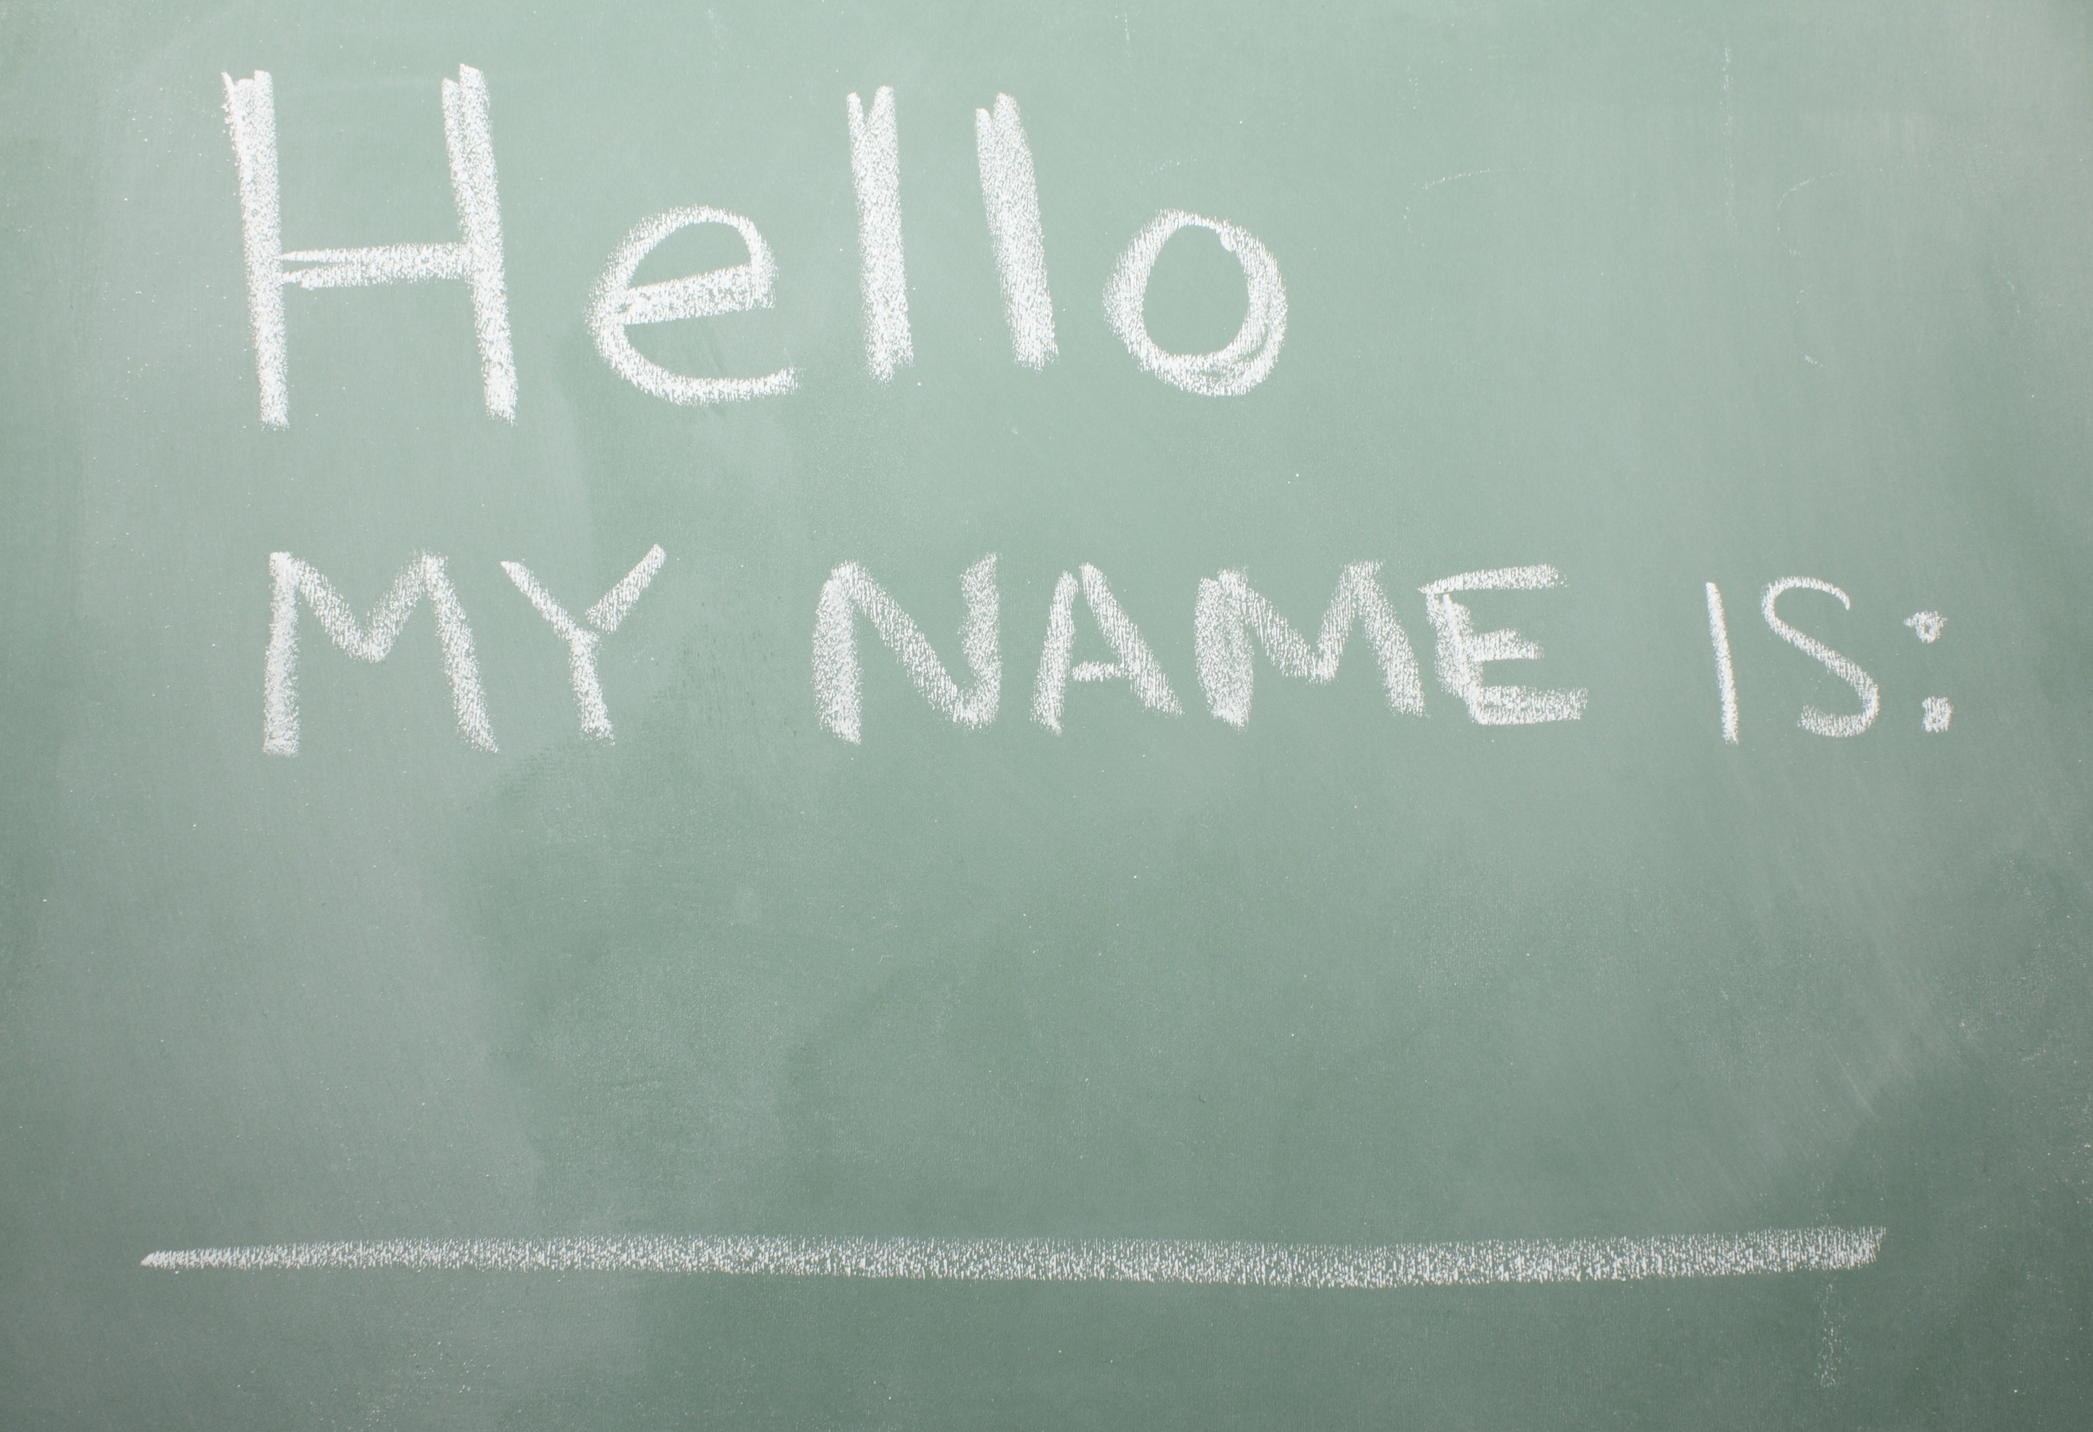 My Name Is Name: Five Extraordinary Facts About